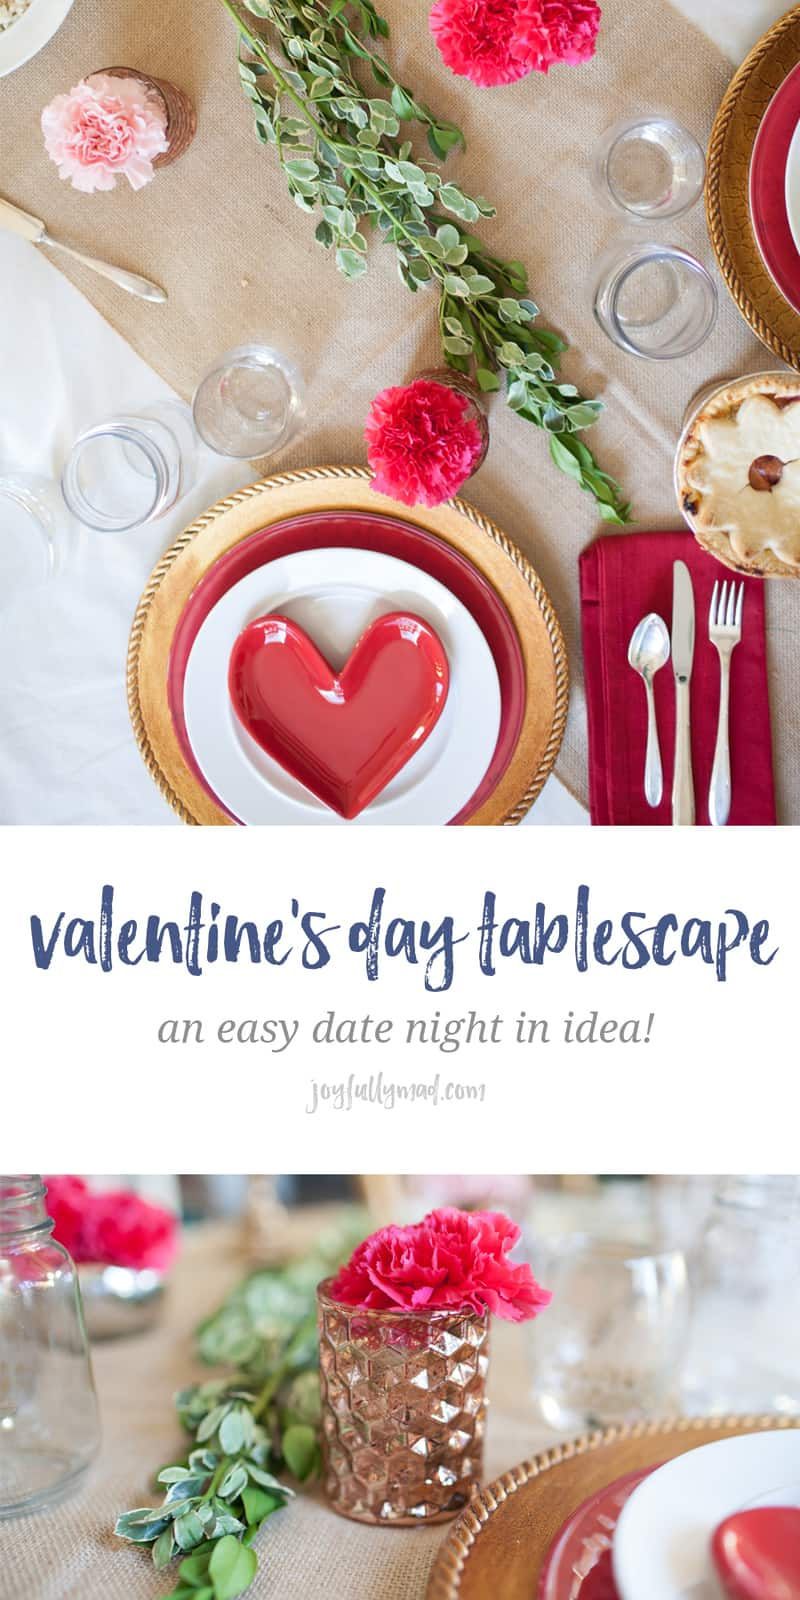 Looking for an easy date night in for Valentine's Day this year? This easy tablescape is the perfect way to wow your sweetheart this year. Plan a gorgeous tablescape with stacked plates of different colors, mixed metals and fresh carnations for a stunning look! valentines day ideas   date night at home   date night   valentines day dinner   valentines day table   valentine's day decor   valentines ideas   steak dinner ideas